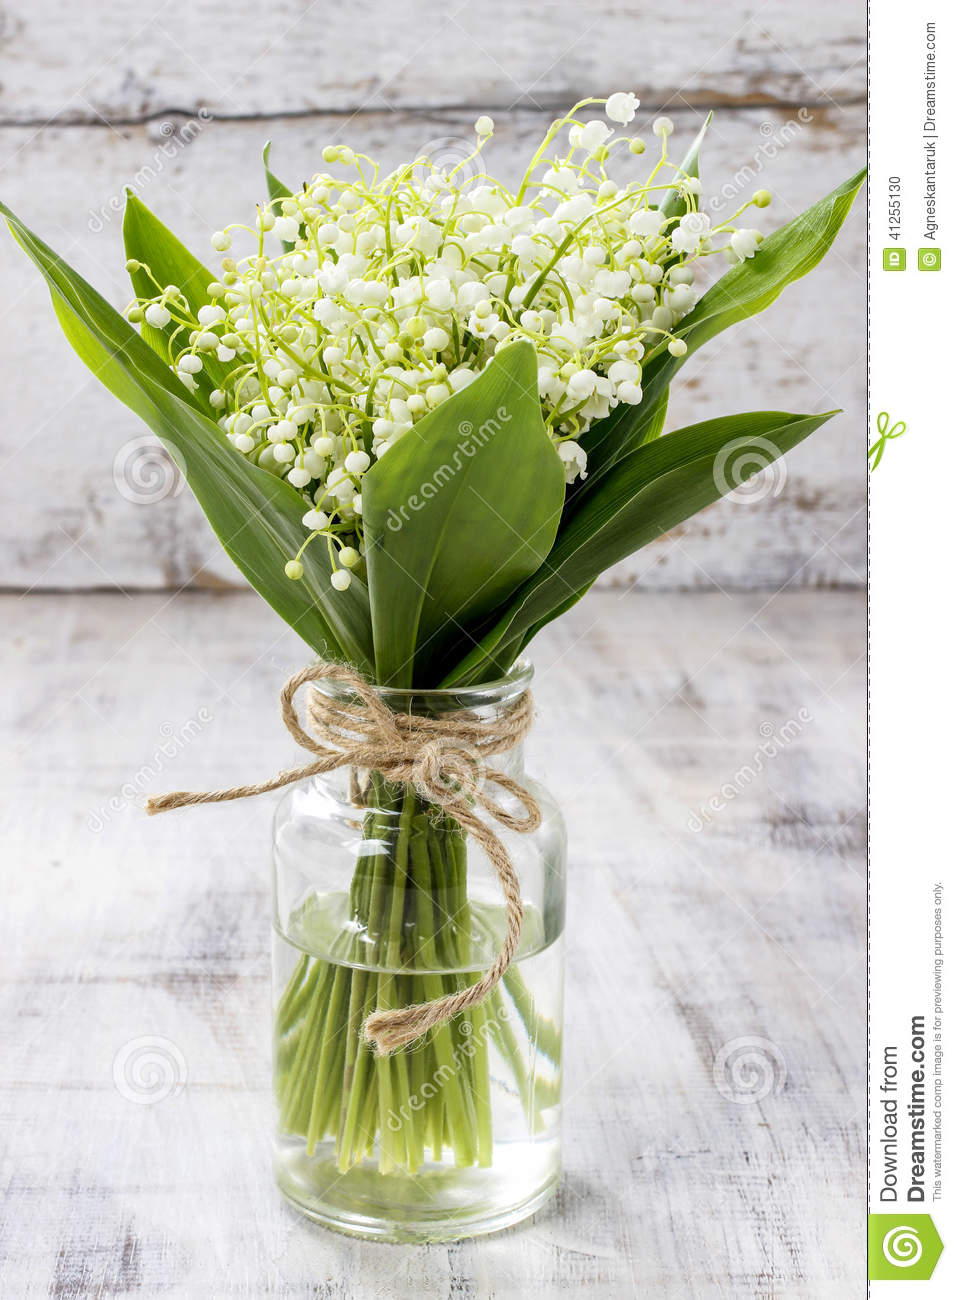 Bouquet Of Lily Of The Valley Flowers Stock Photo Image Of Lily